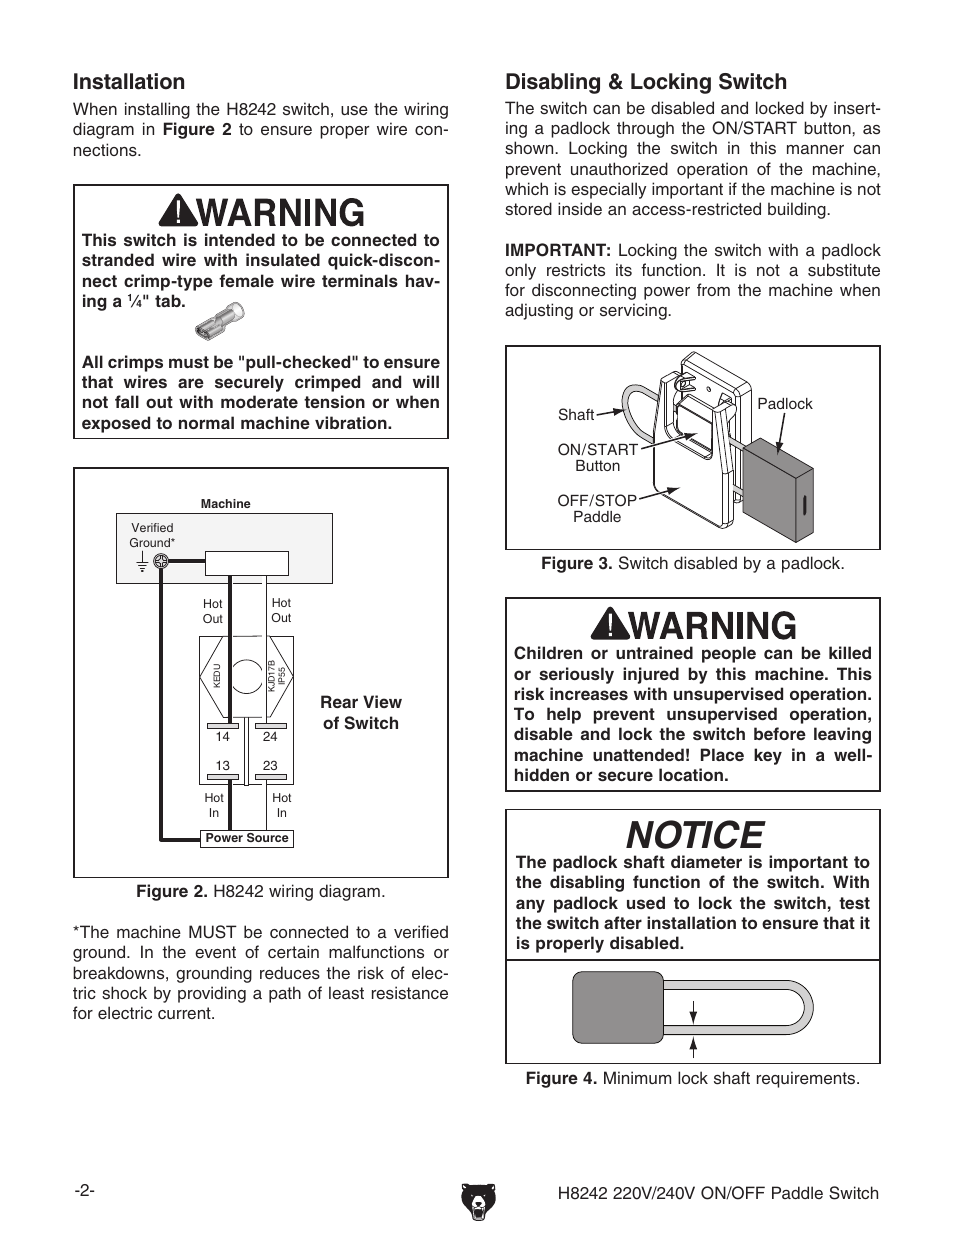 notice disabling locking switch installation grizzly h8242 notice disabling locking switch installation grizzly h8242 user manual page 2 2